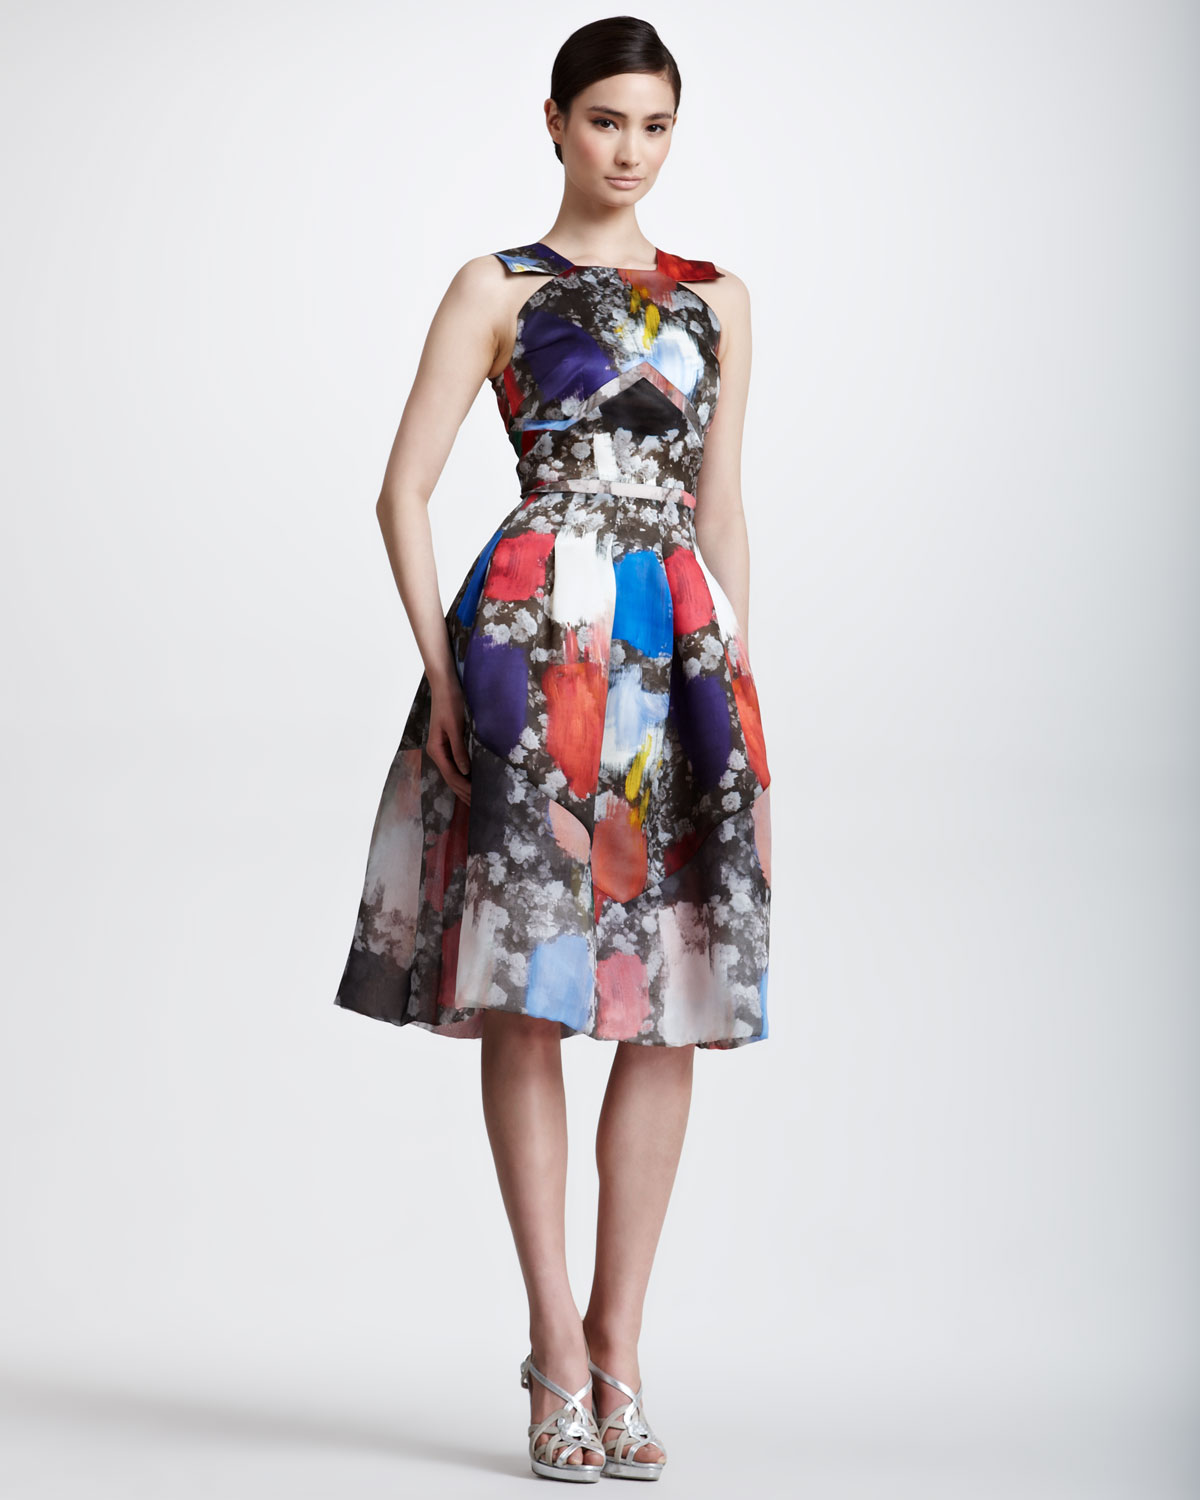 Christopher Kane Dress View Fullscreen